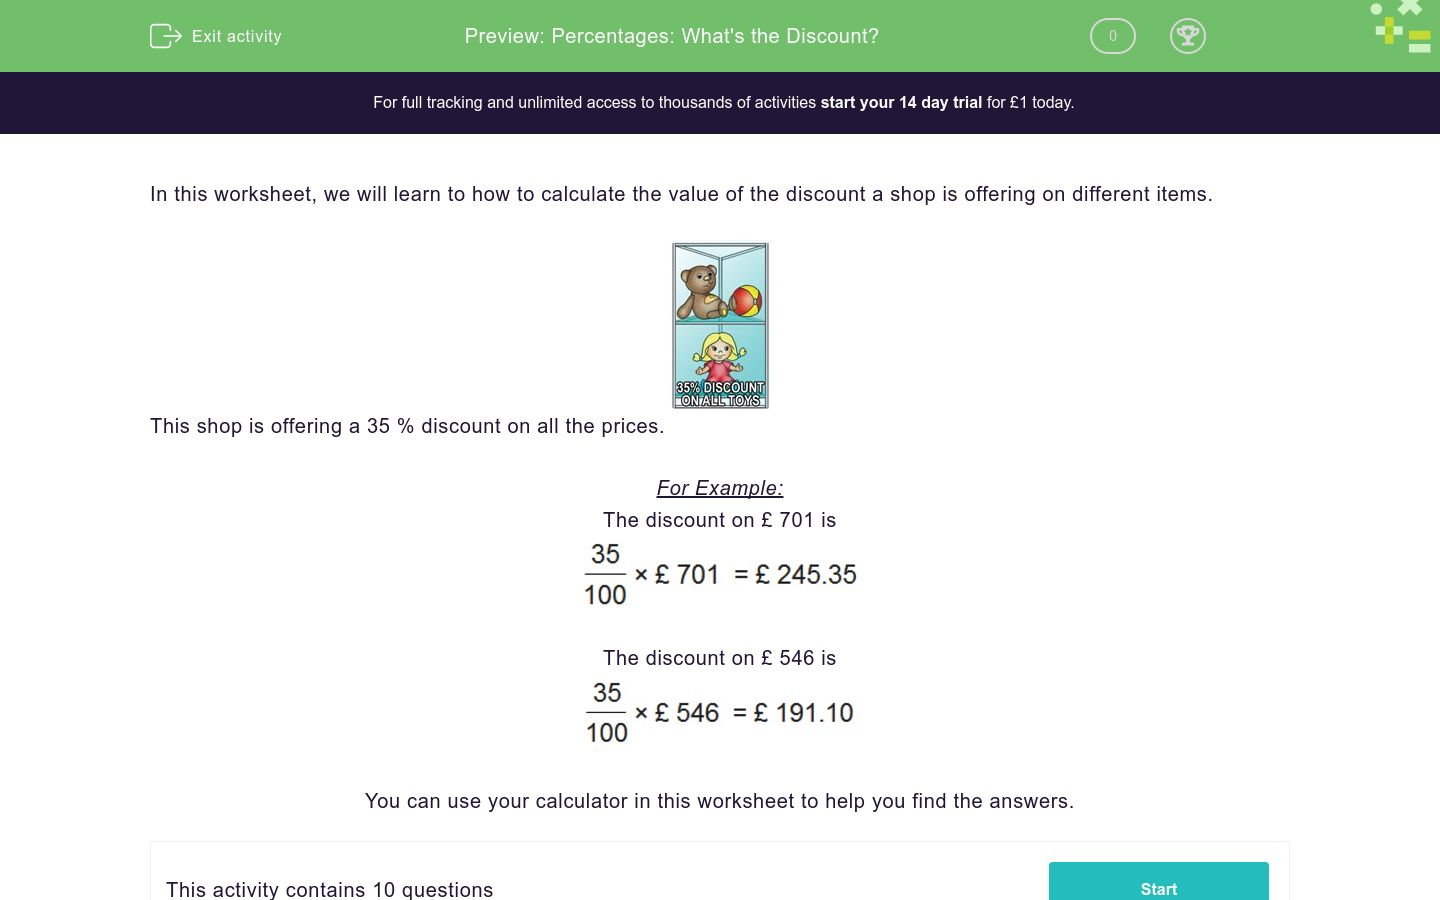 'Percentages: What's the Discount?' worksheet